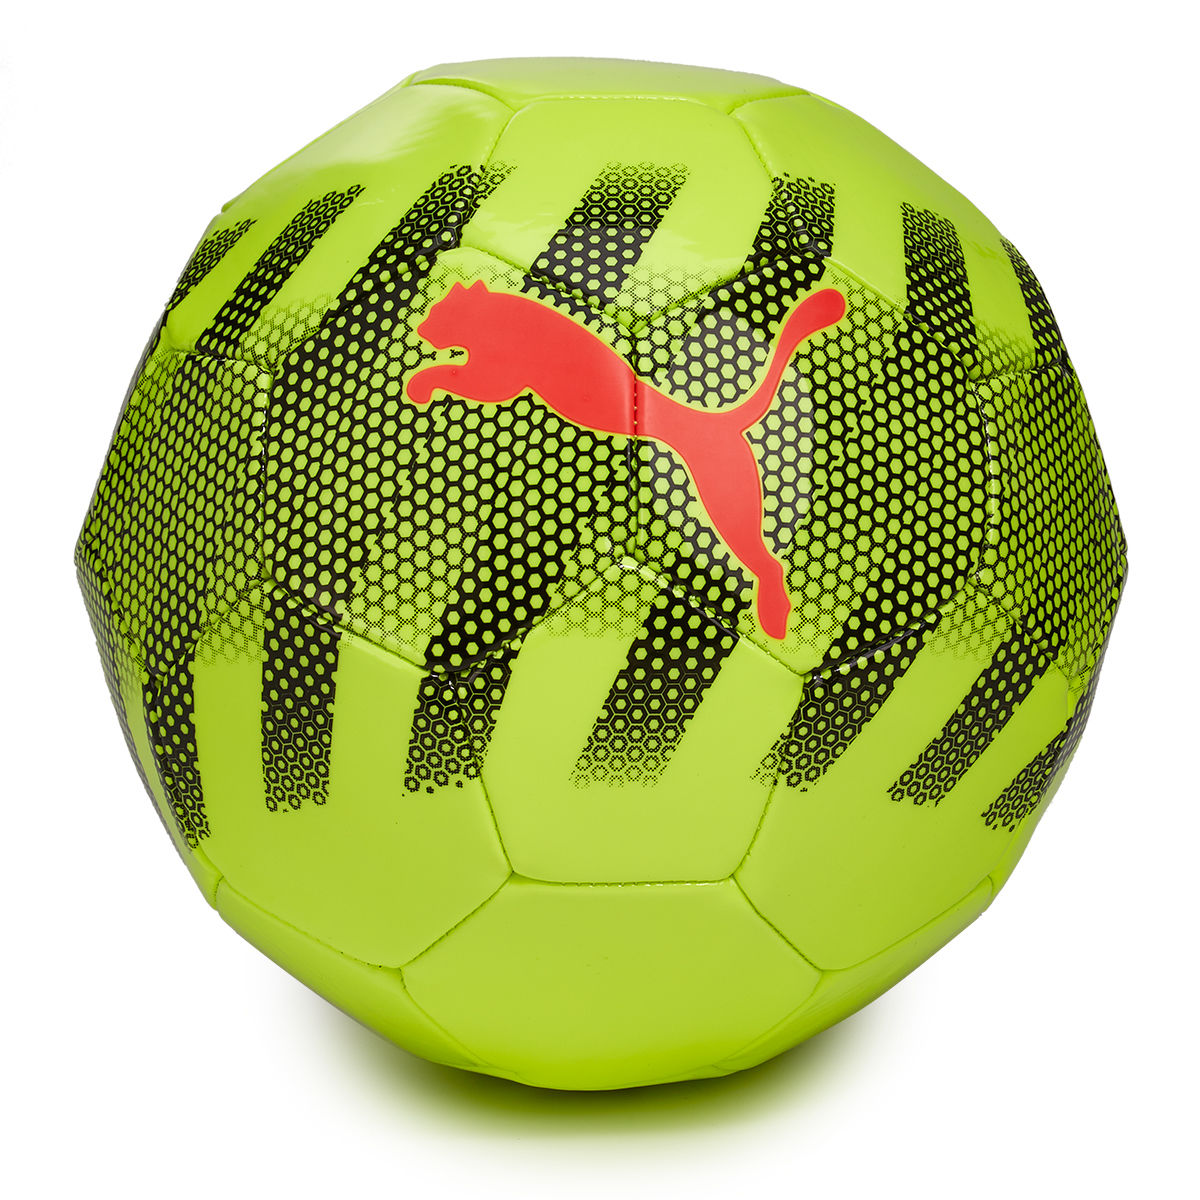 Puma Spirit Soccer Ball - Yellow, 4